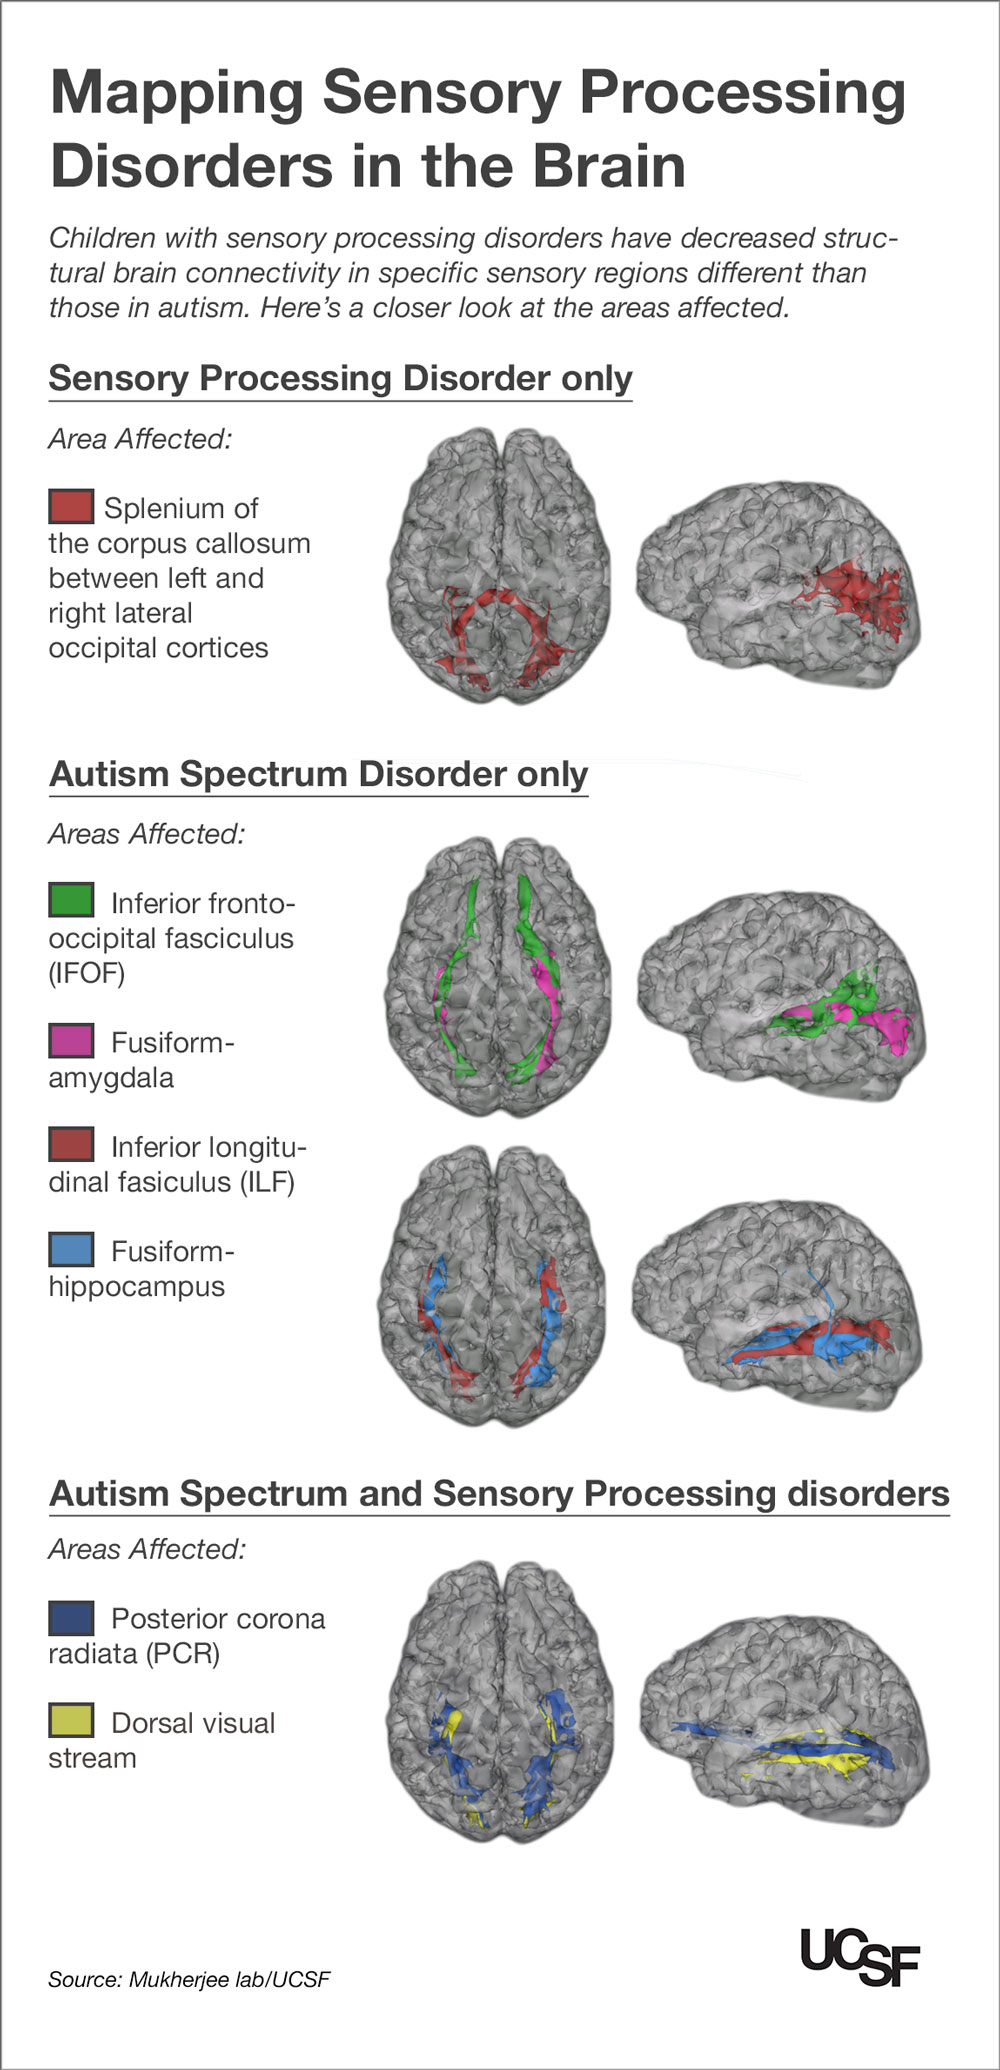 medium resolution of kids with autism sensory processing disorders show brain wiring differences